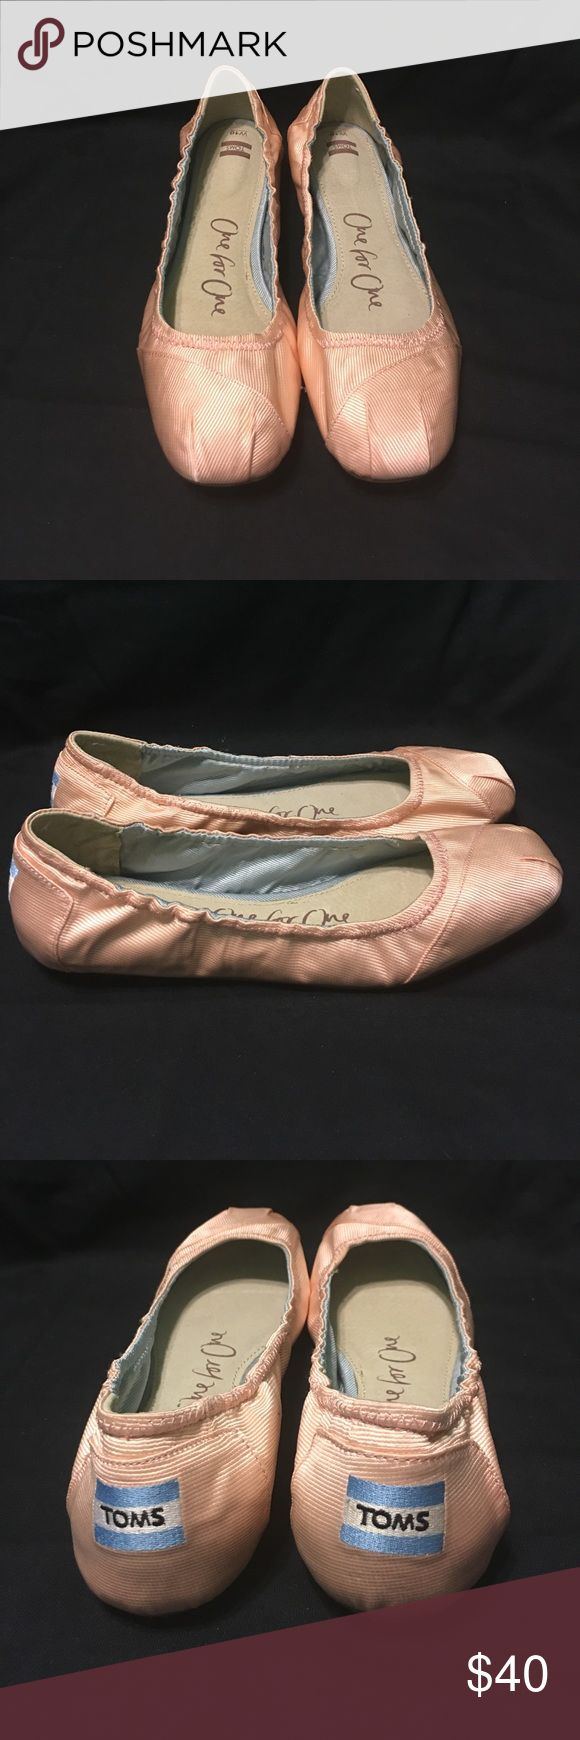 🌸NEVER WORN🌸 TOMS Ballet Flats Super comfortable TOMS ballet flats in a pale pink. Toms Shoes Flats & Loafers